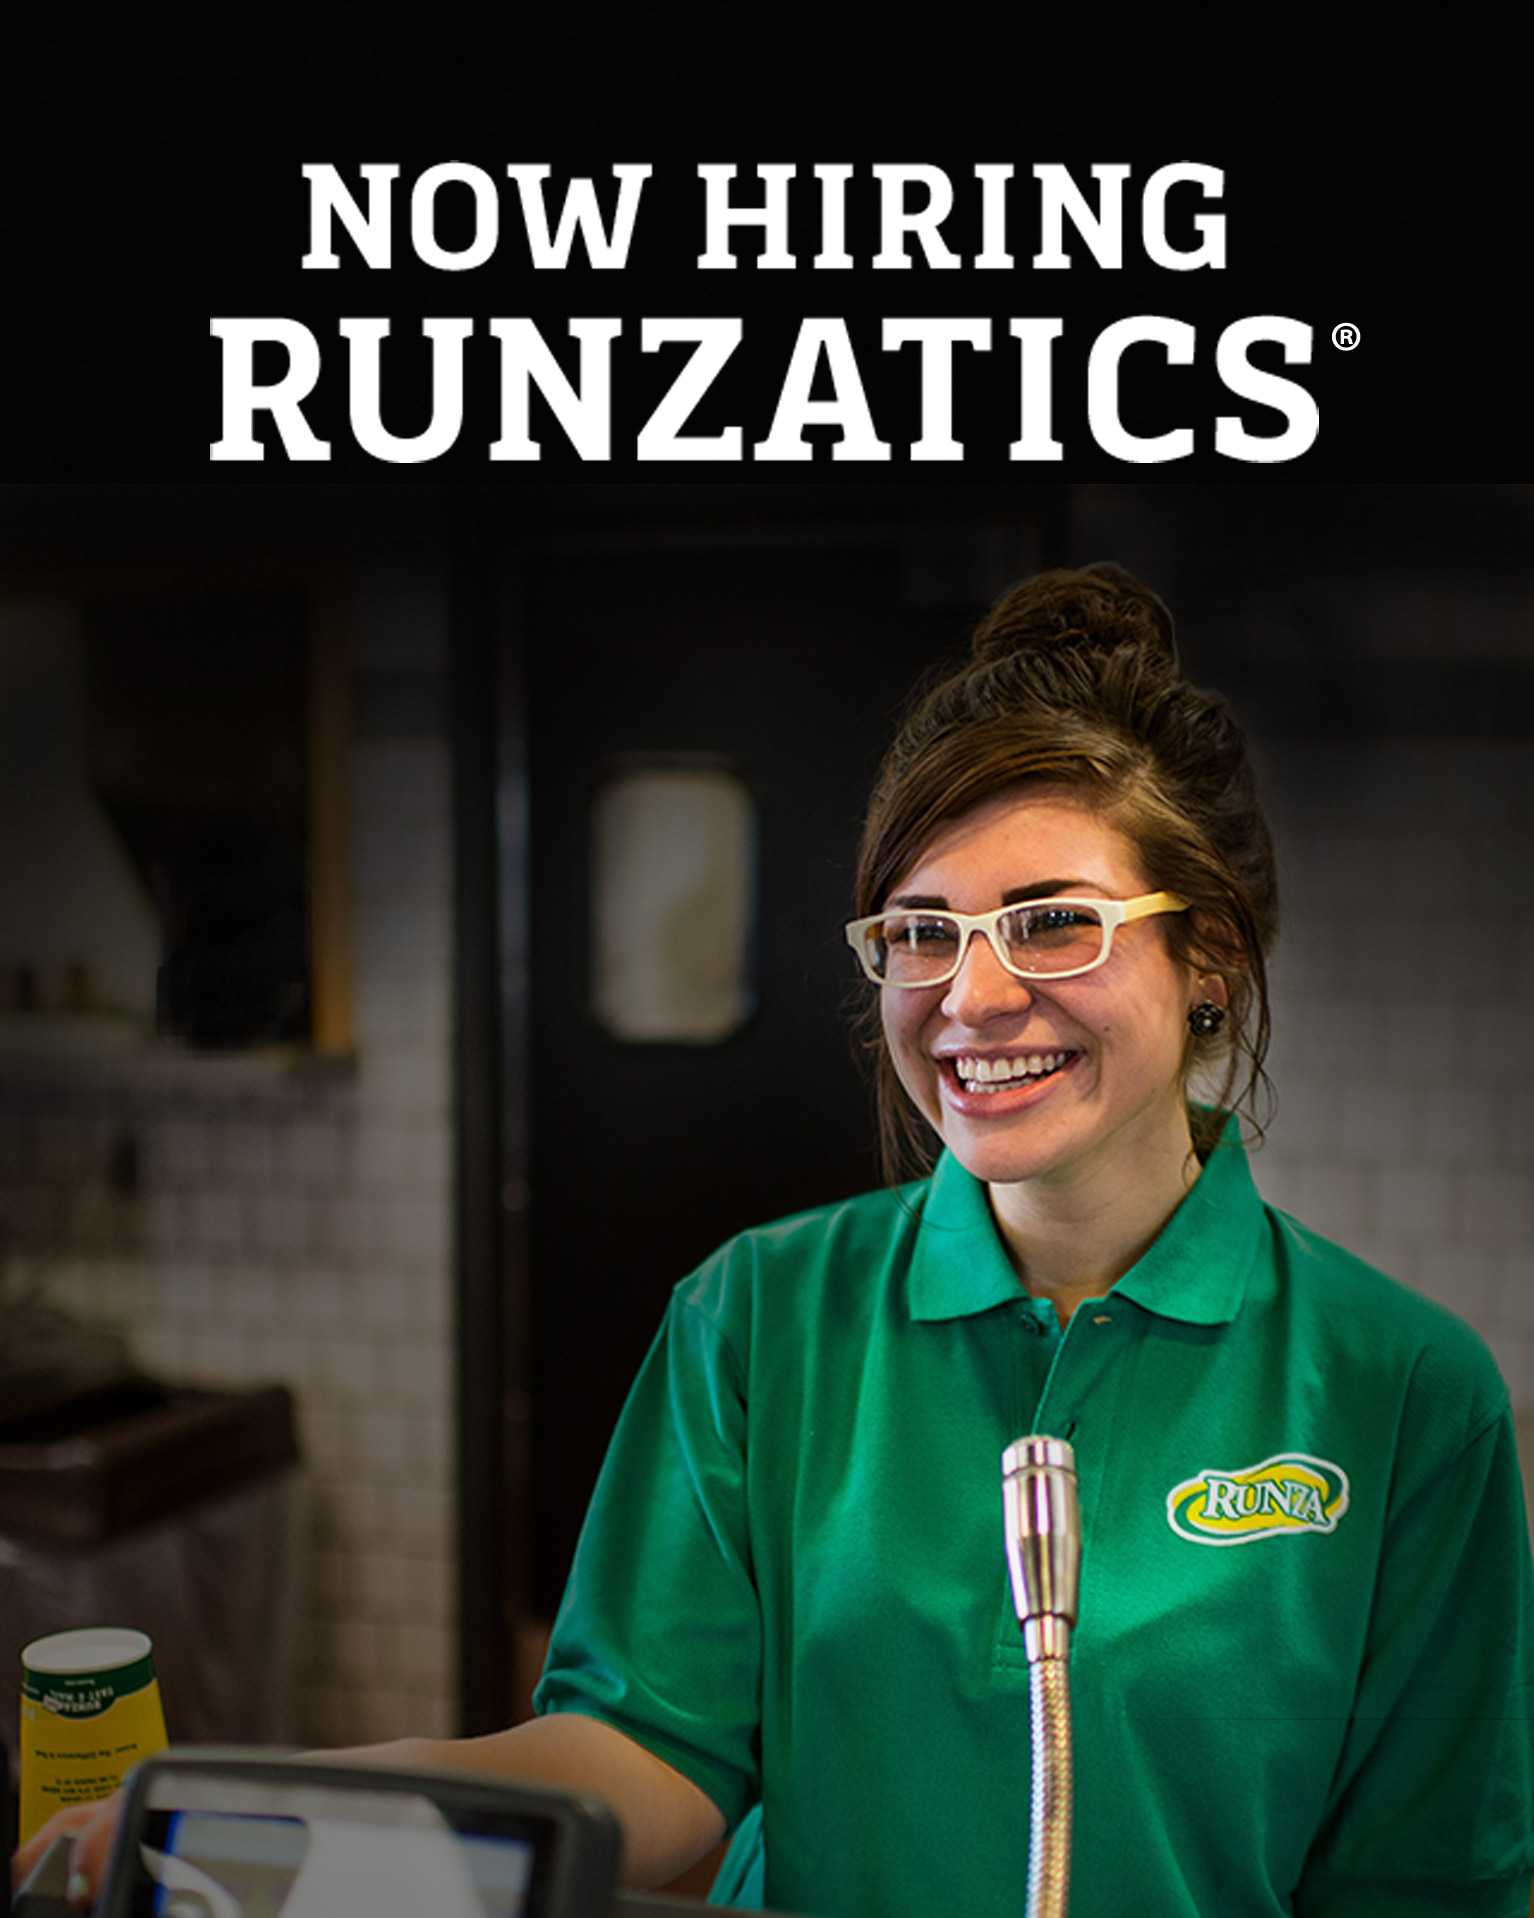 Now Hiring Runzatics